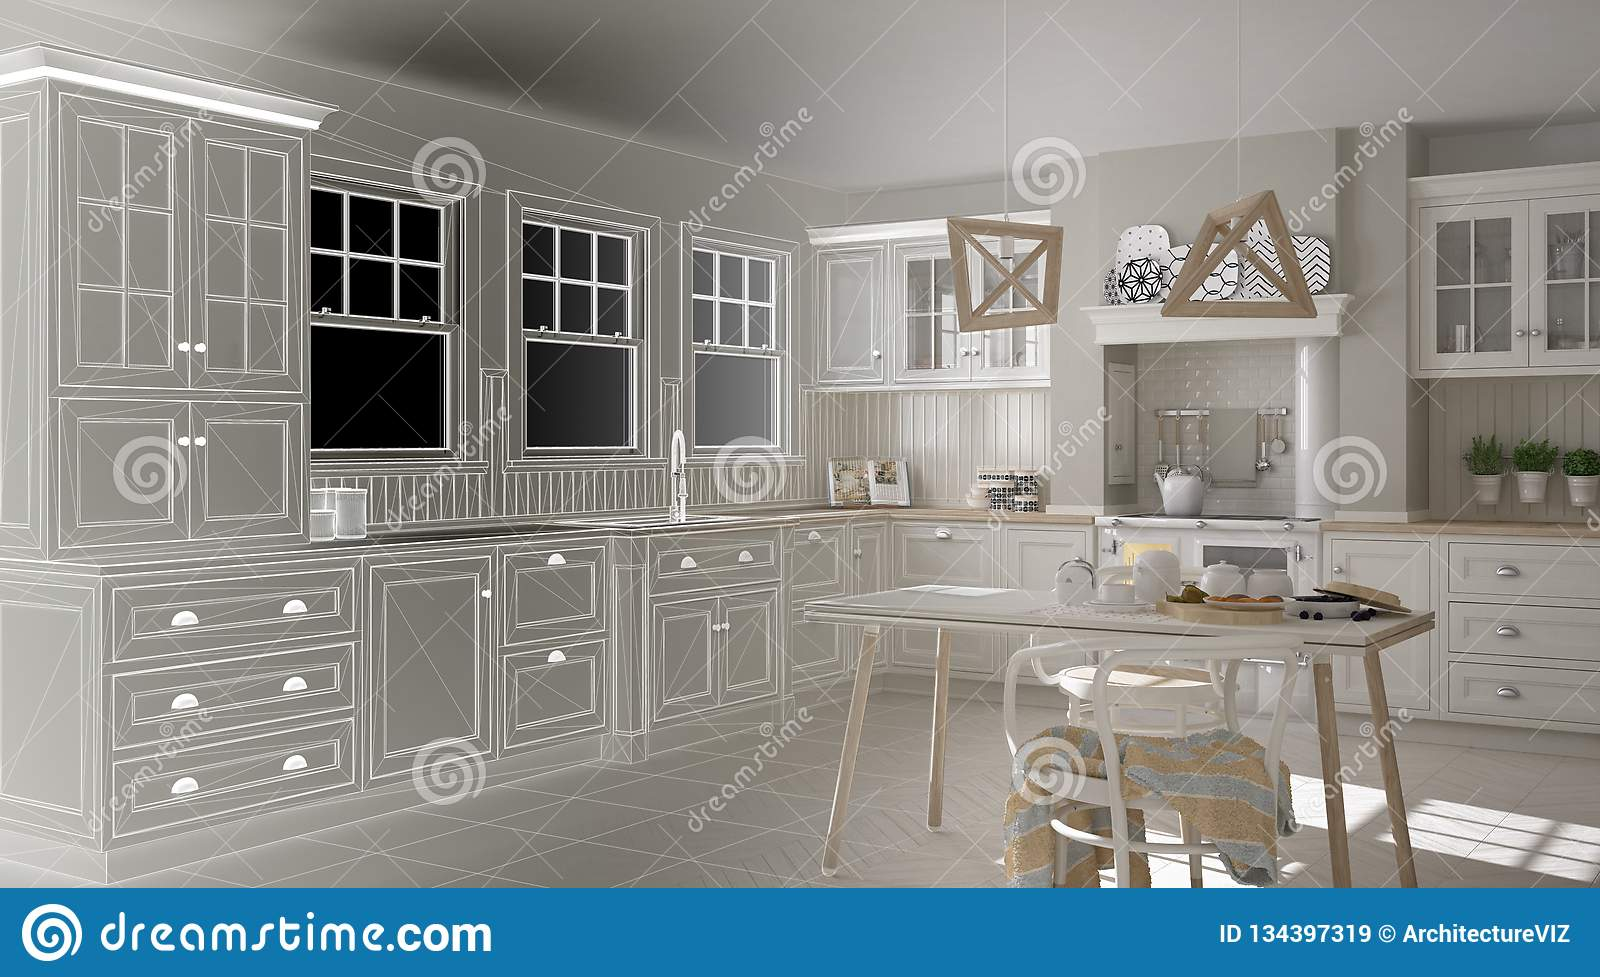 Unfinished Project Draft Of Scandinavian Classic Kitchen With ...